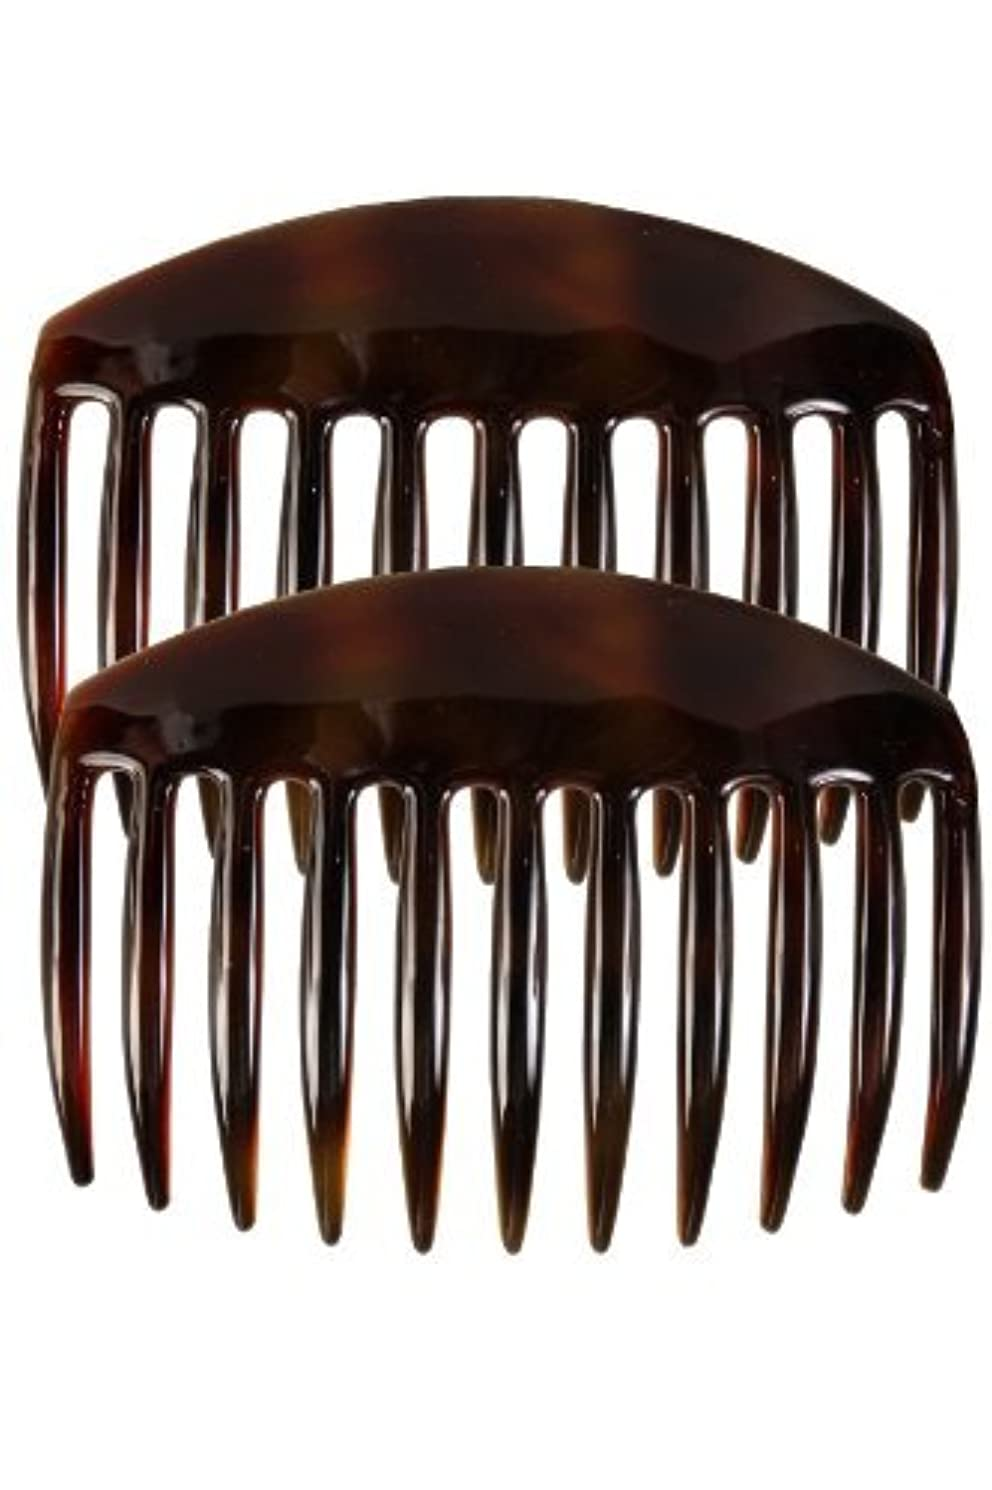 嘆願些細な銀行Caravan French Tooth Back Comb Tortoise Shell Pair, Large.65 Ounce [並行輸入品]